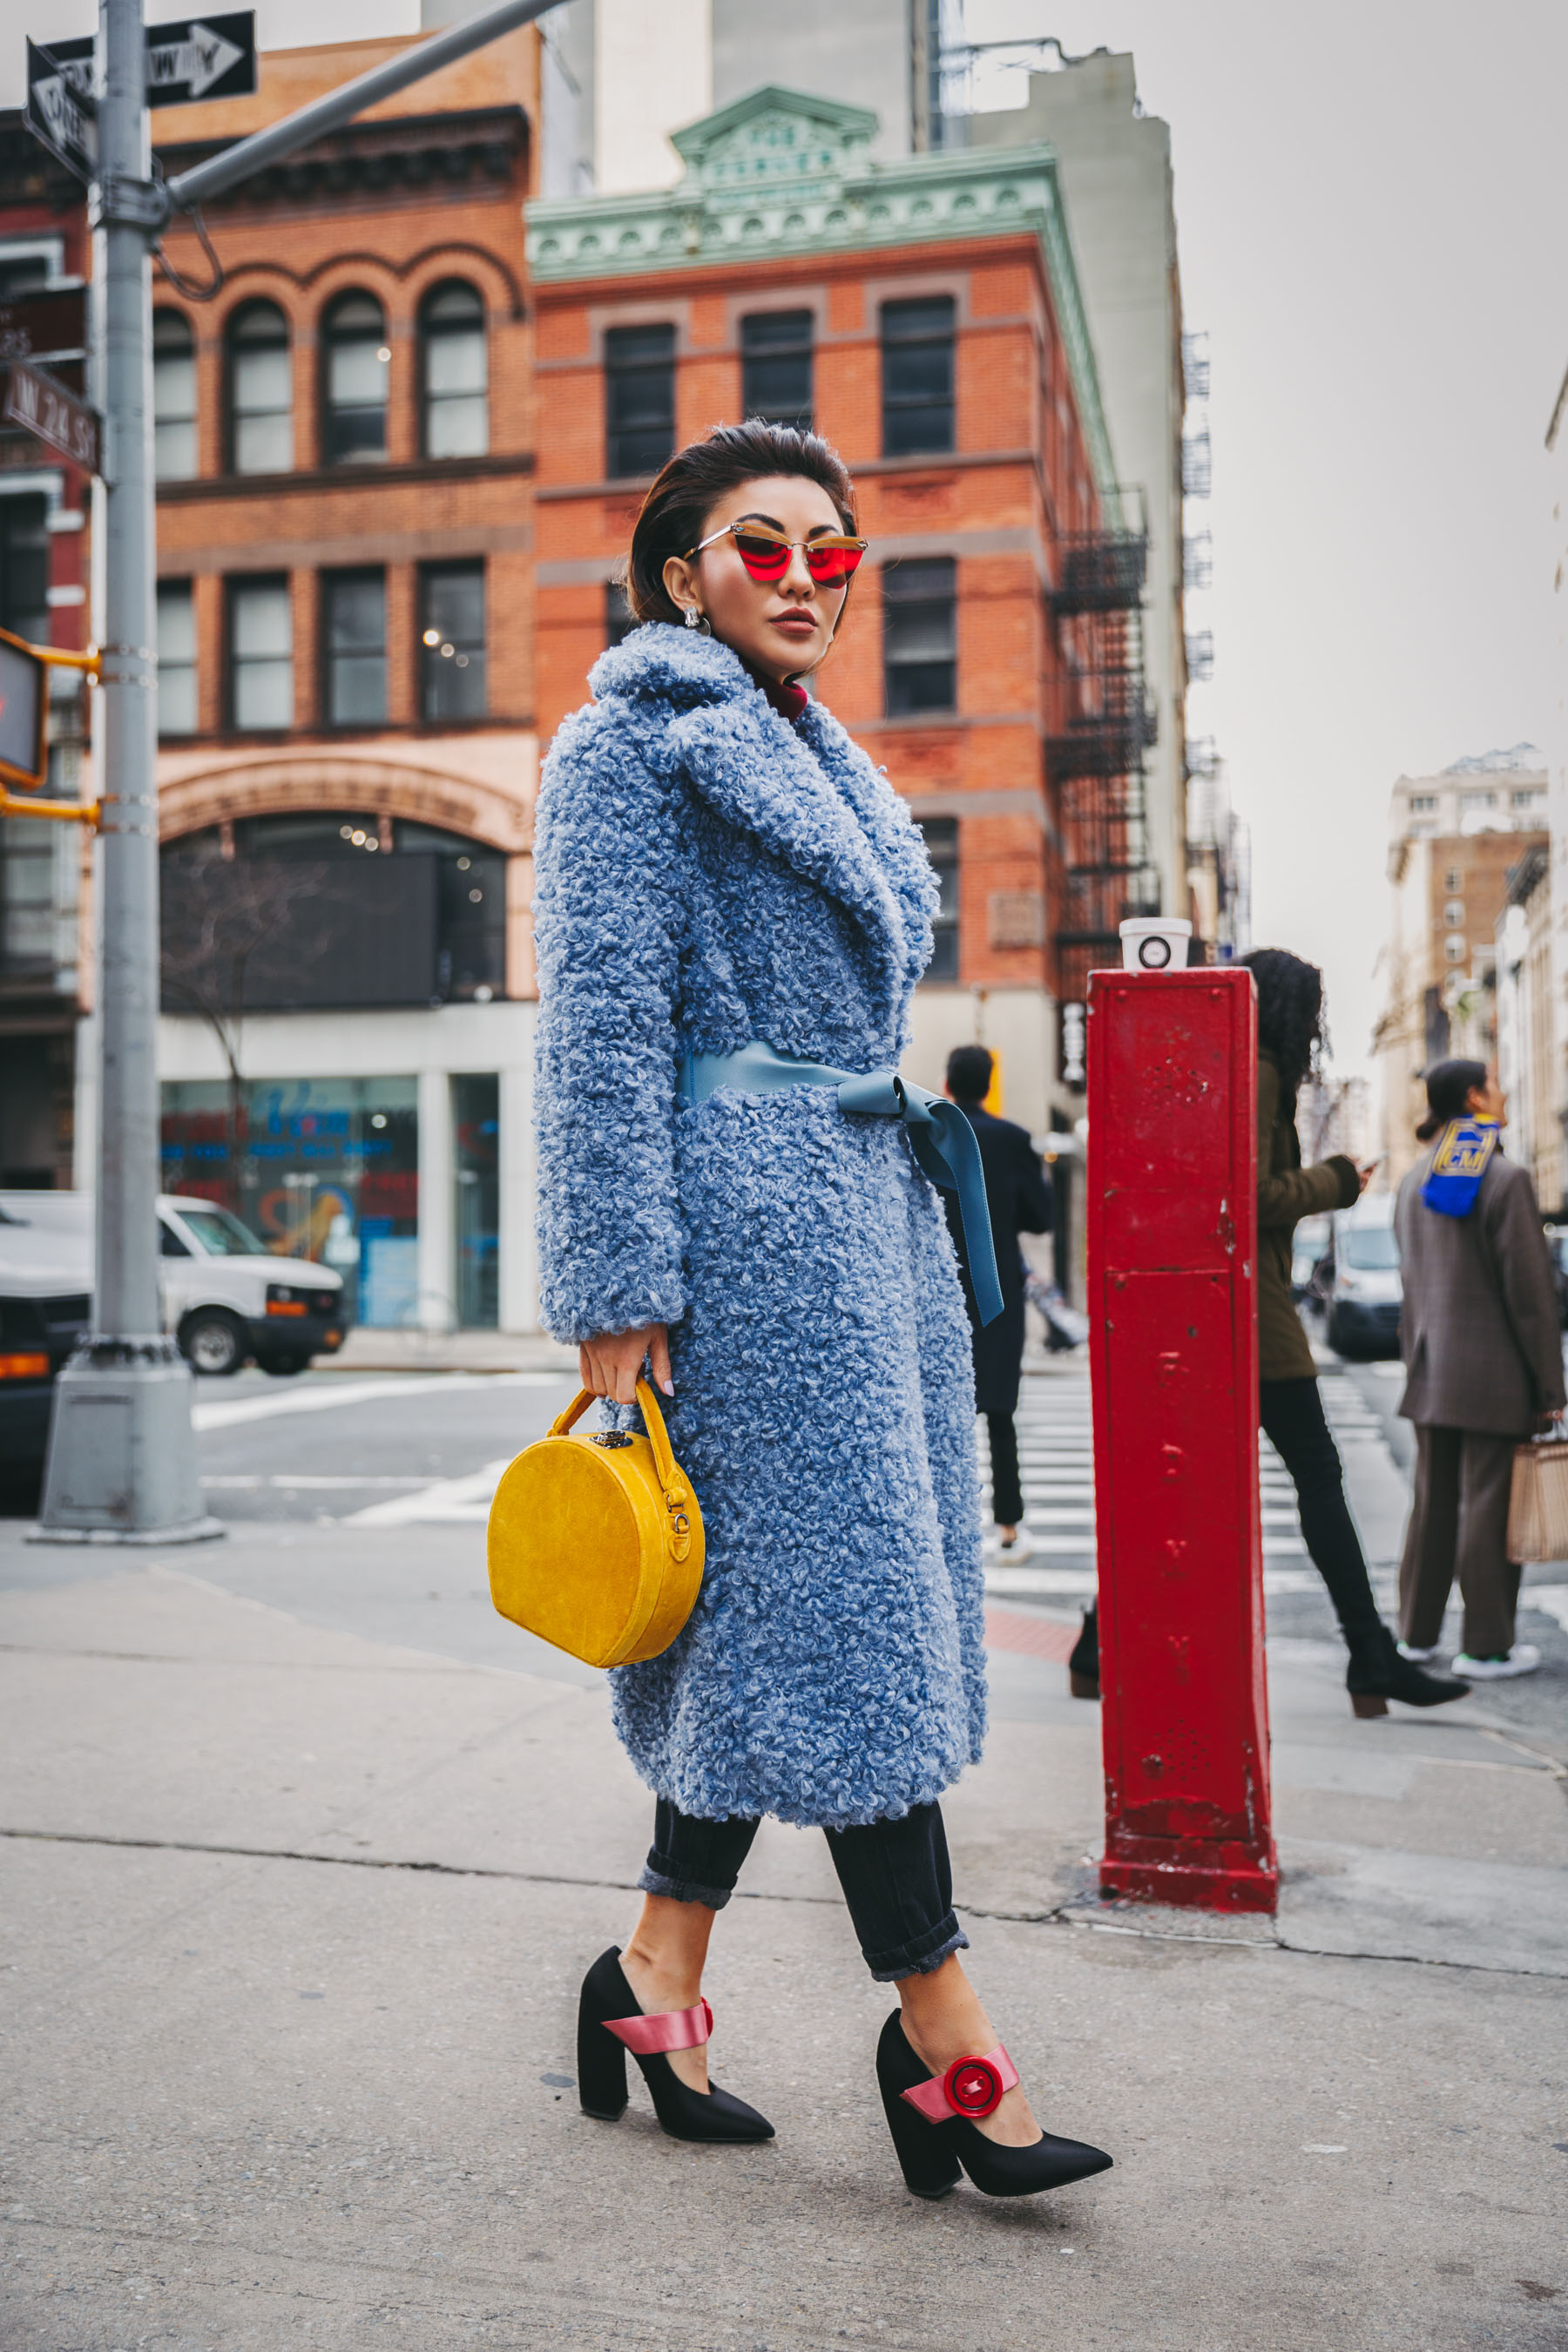 NYFW 2018 Street Style - Blue Teddy Coat and yellow circle bag // Notjessfashion.com